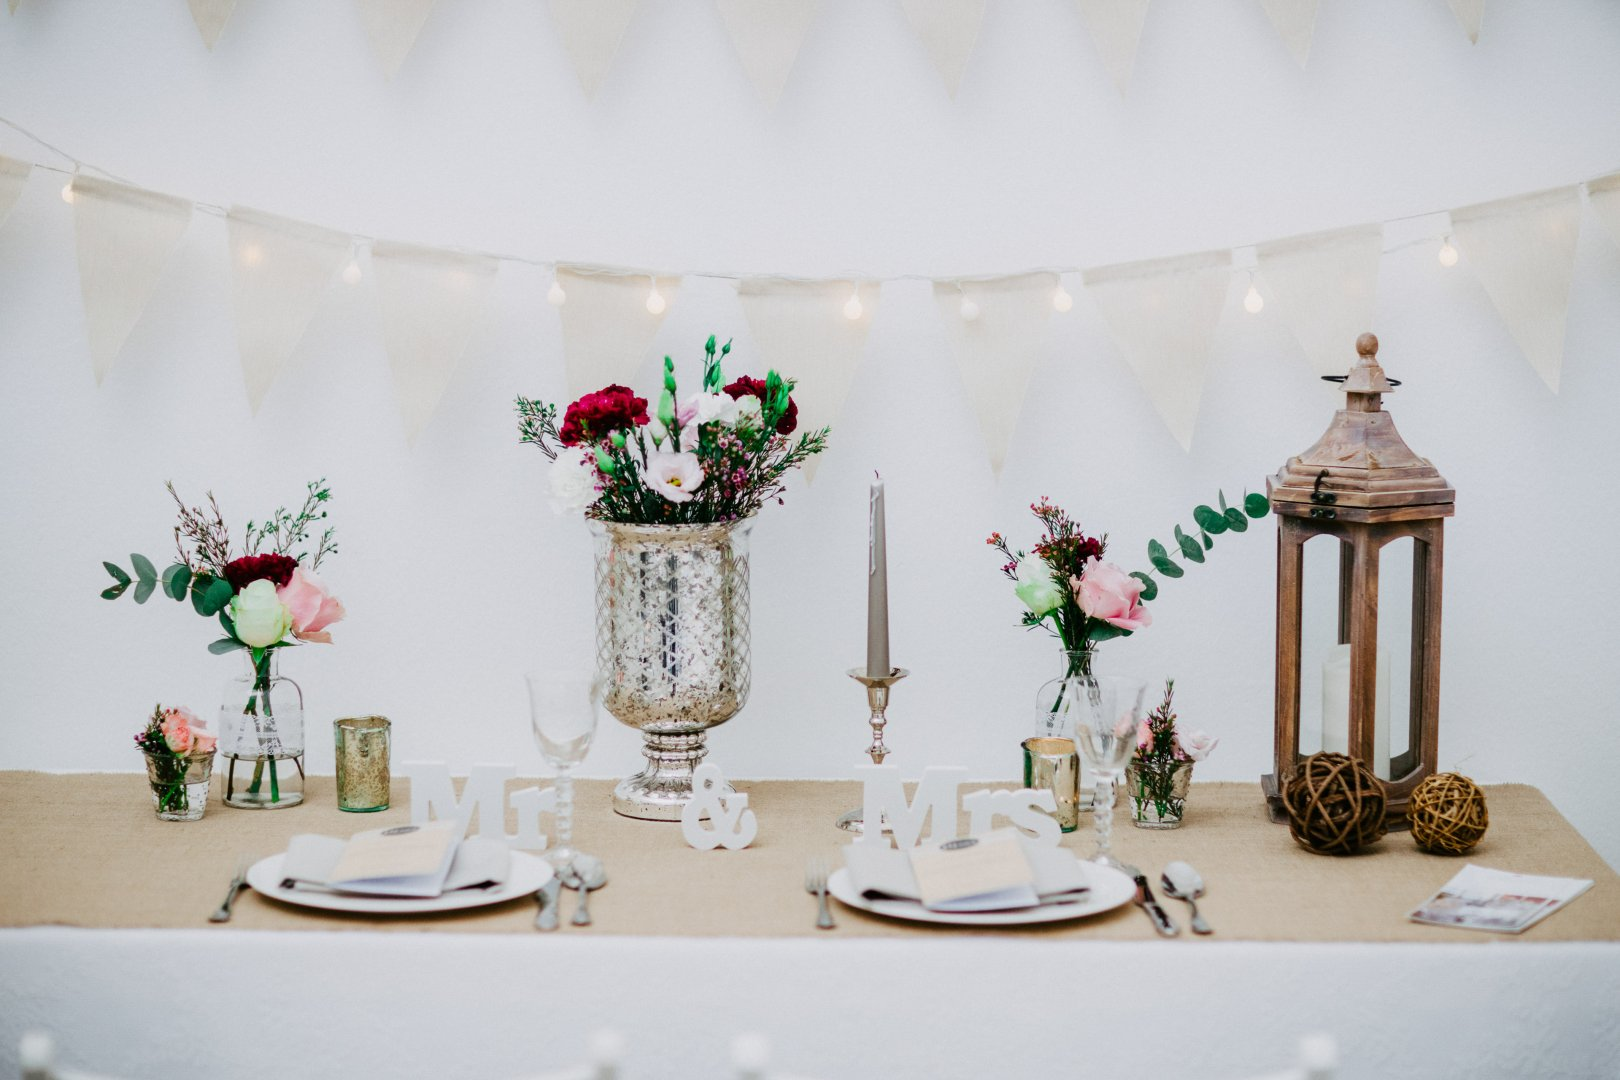 Decoration Photograph Pink Table Room Interior design Floral design Flower Floristry Tableware Textile Centrepiece Plant Event Furniture Branch Flower Arranging Wildflower Tablecloth Ceremony Peach Wedding reception Party Twig Rose